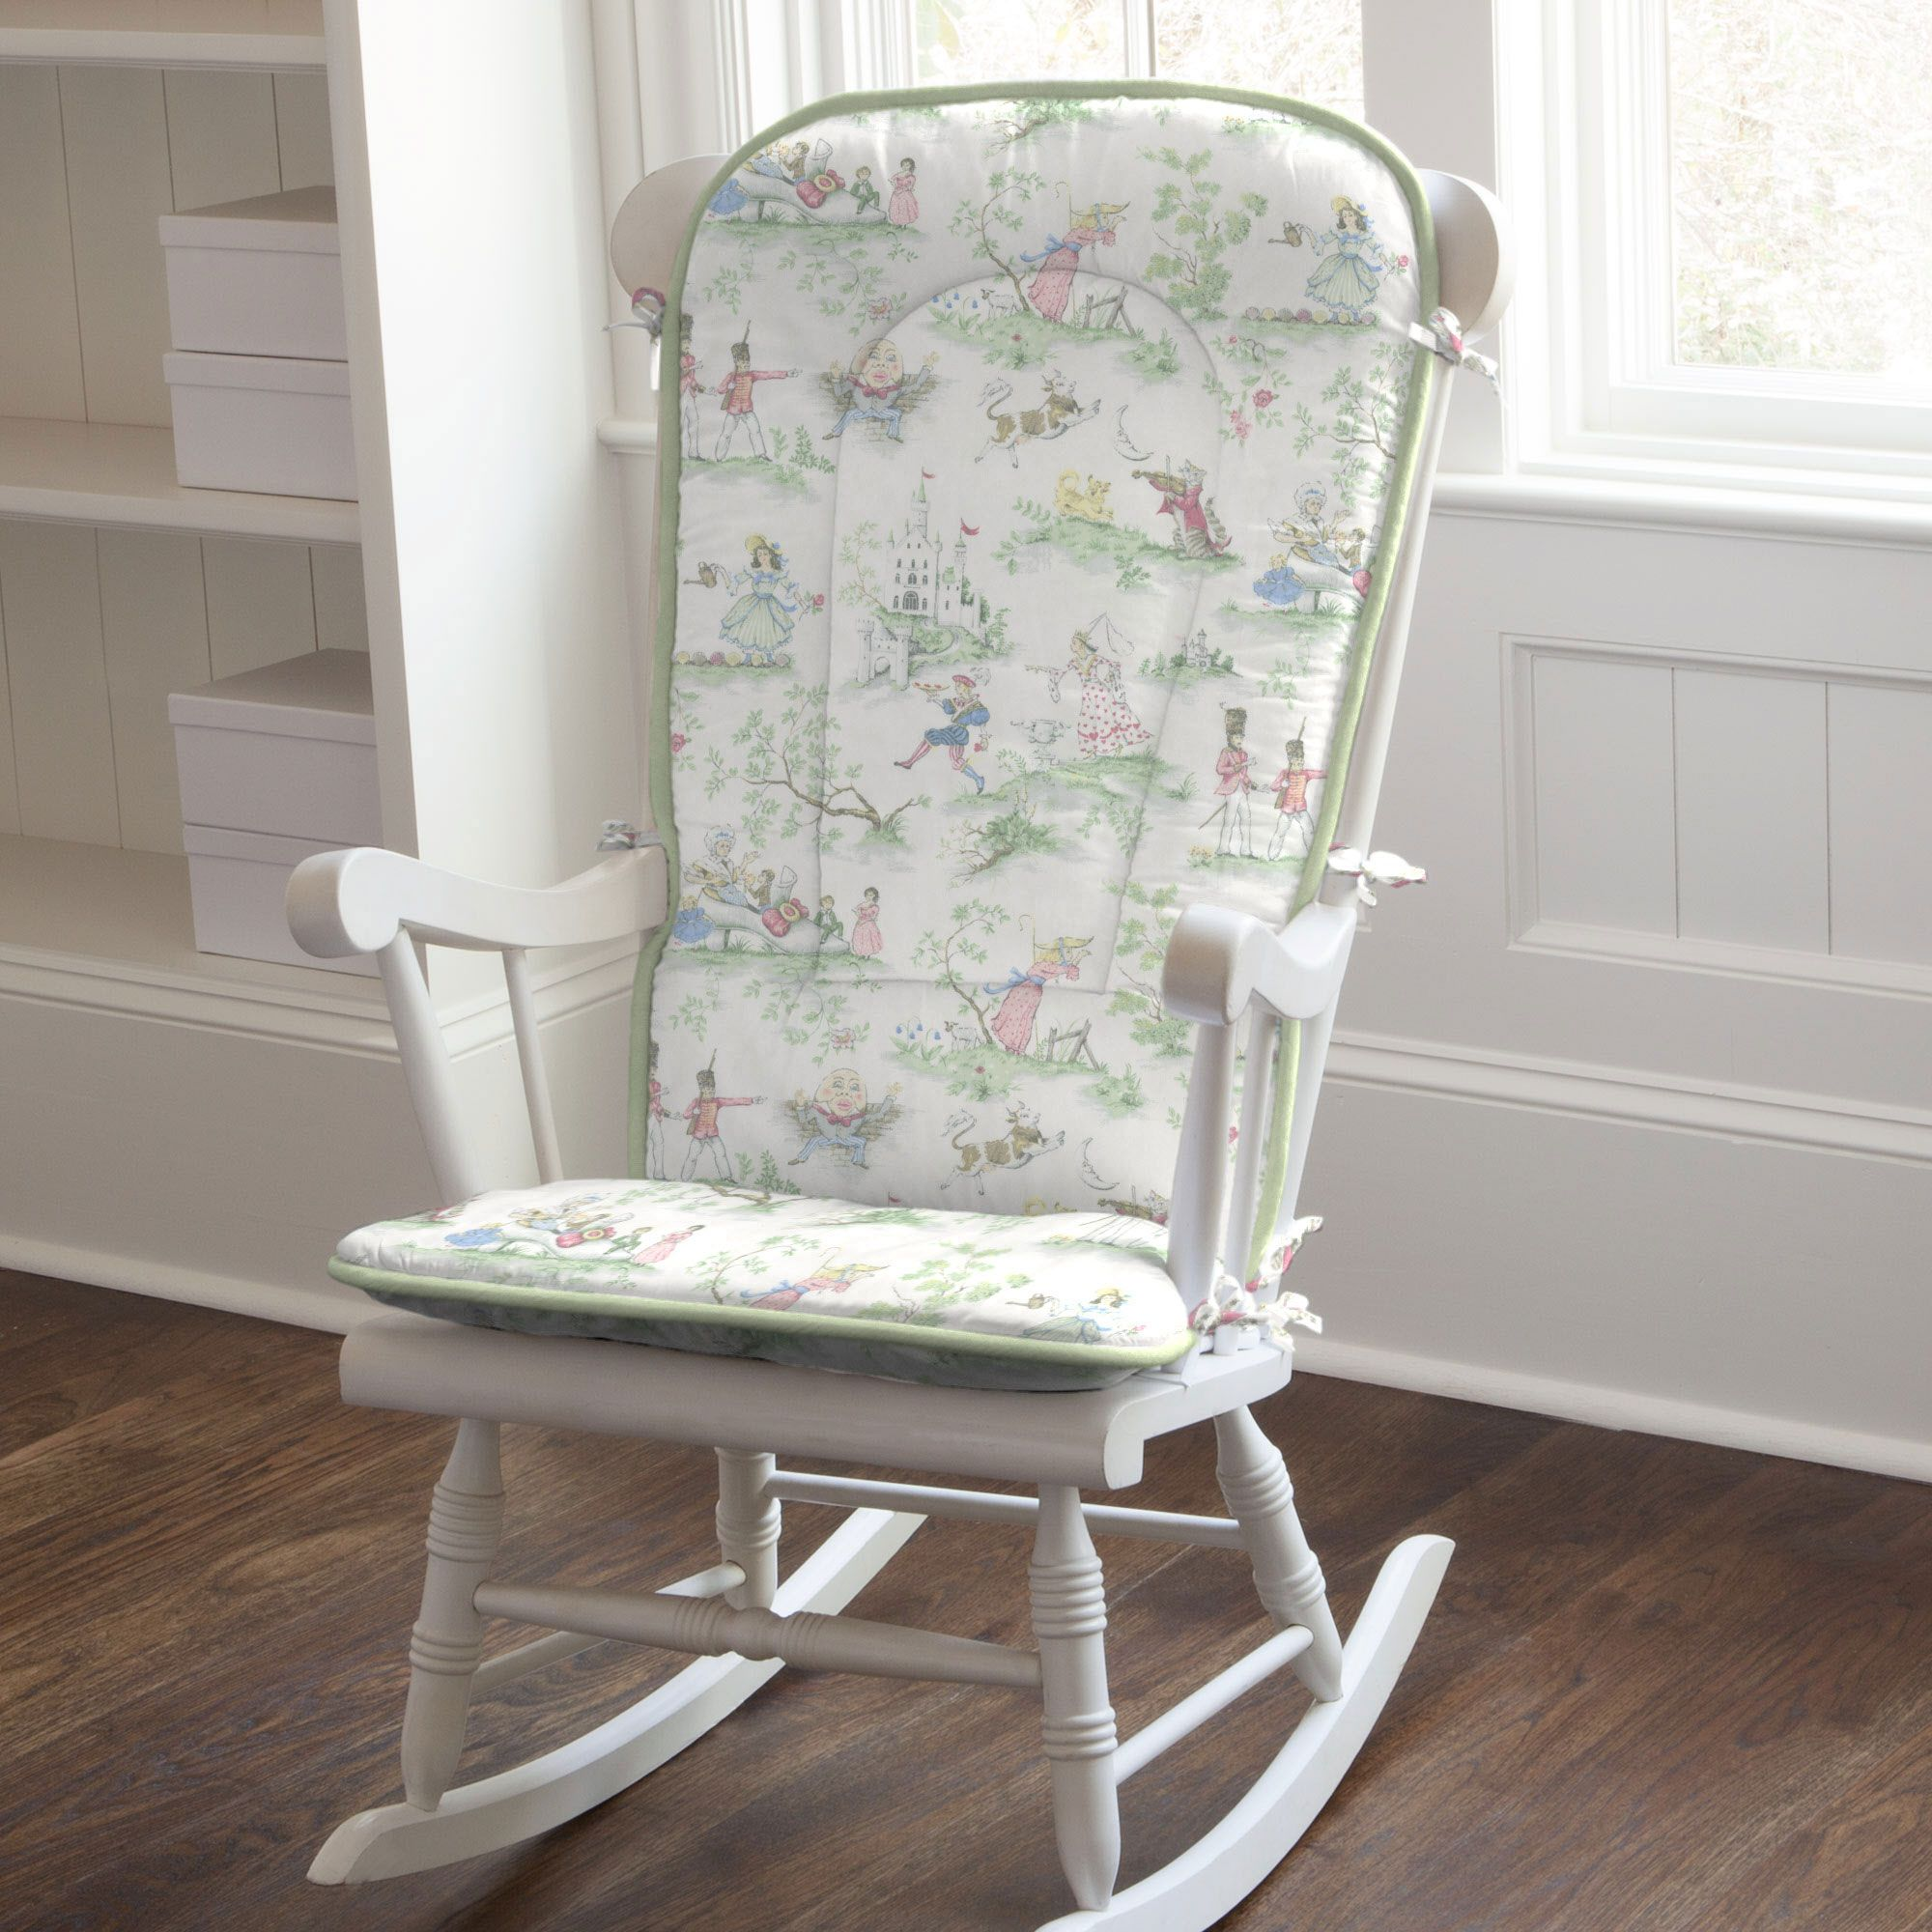 Rocking Chair Cushion In Nursery Rhyme Toile Sage By Carousel Designs Slip These Comfy Pads